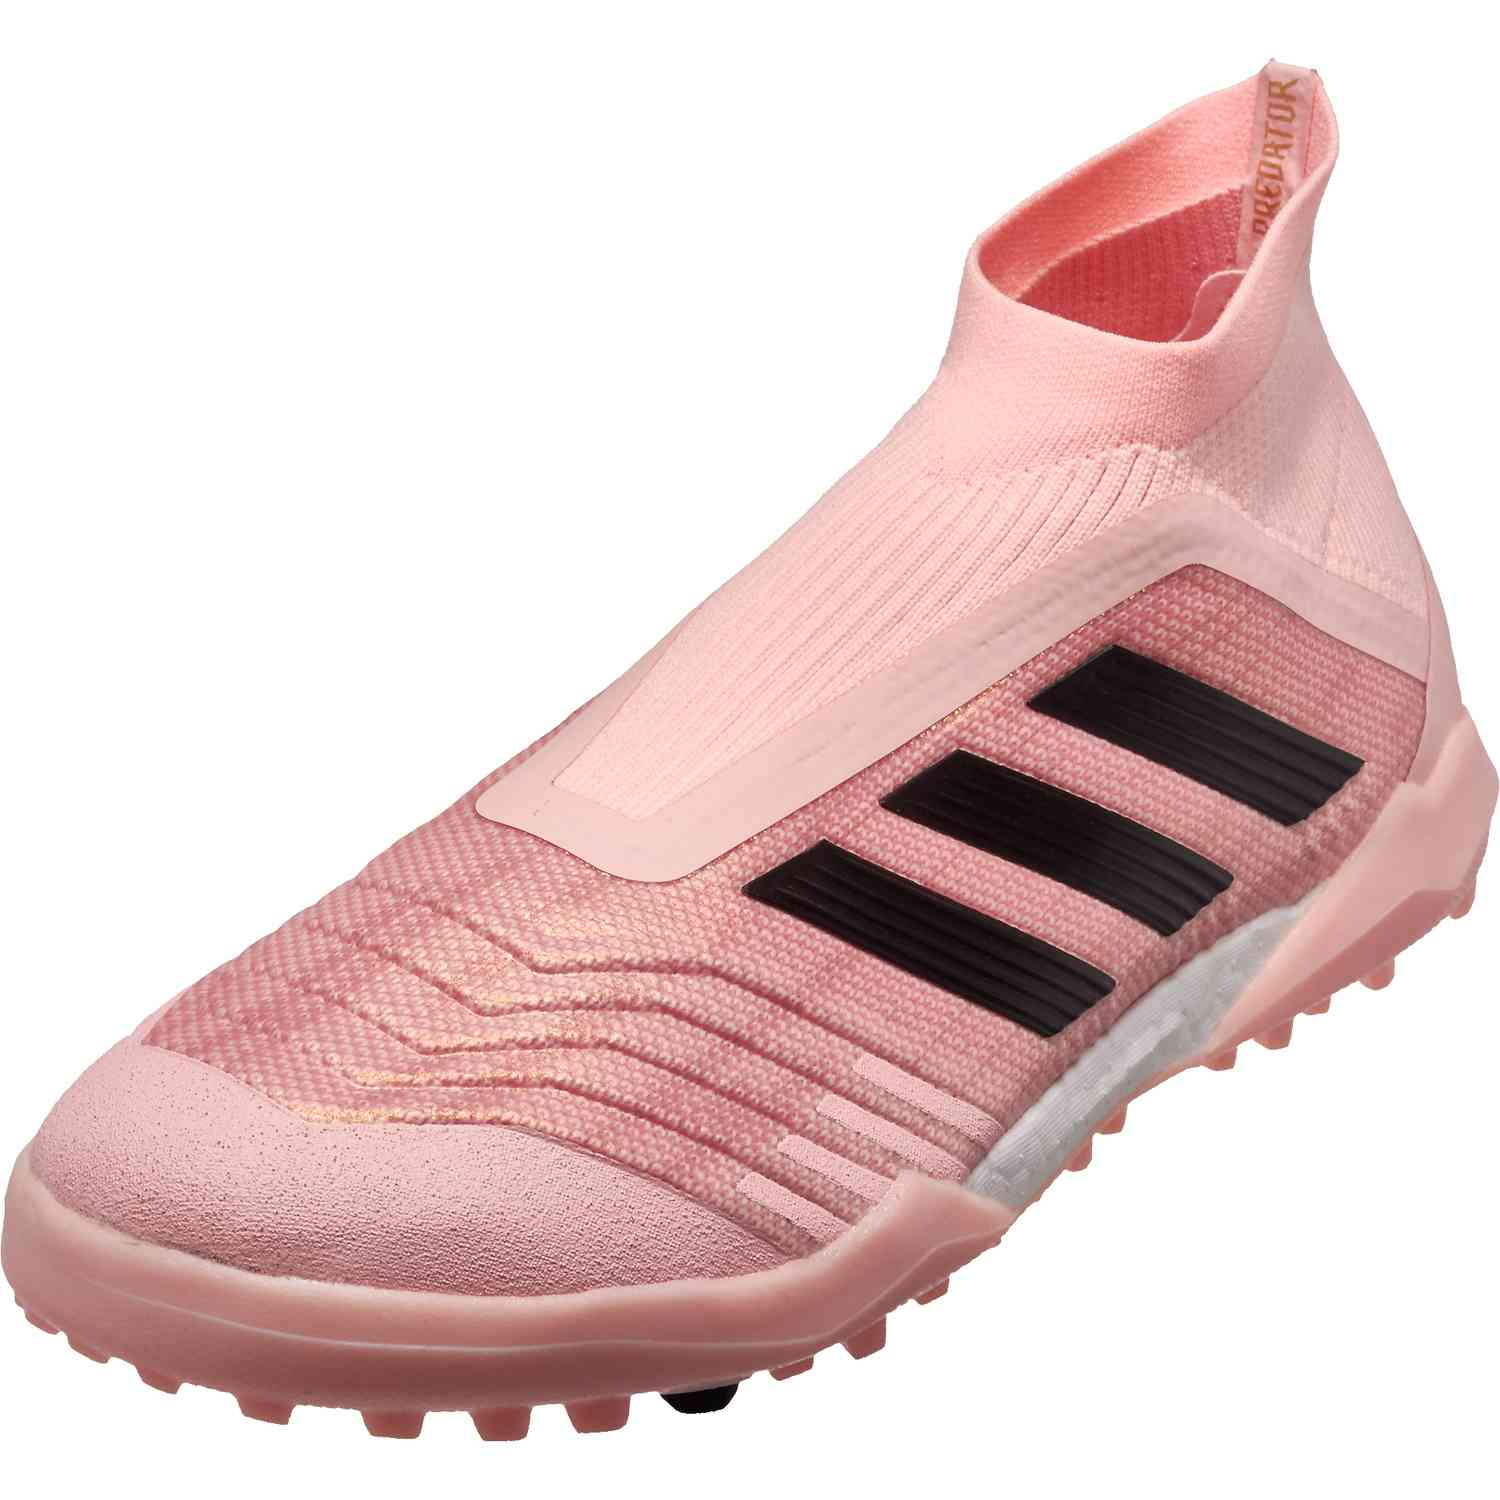 2aaaad63637 adidas Predator Tango 18+ TF - Clear Orange/Black/Trace Pink ...